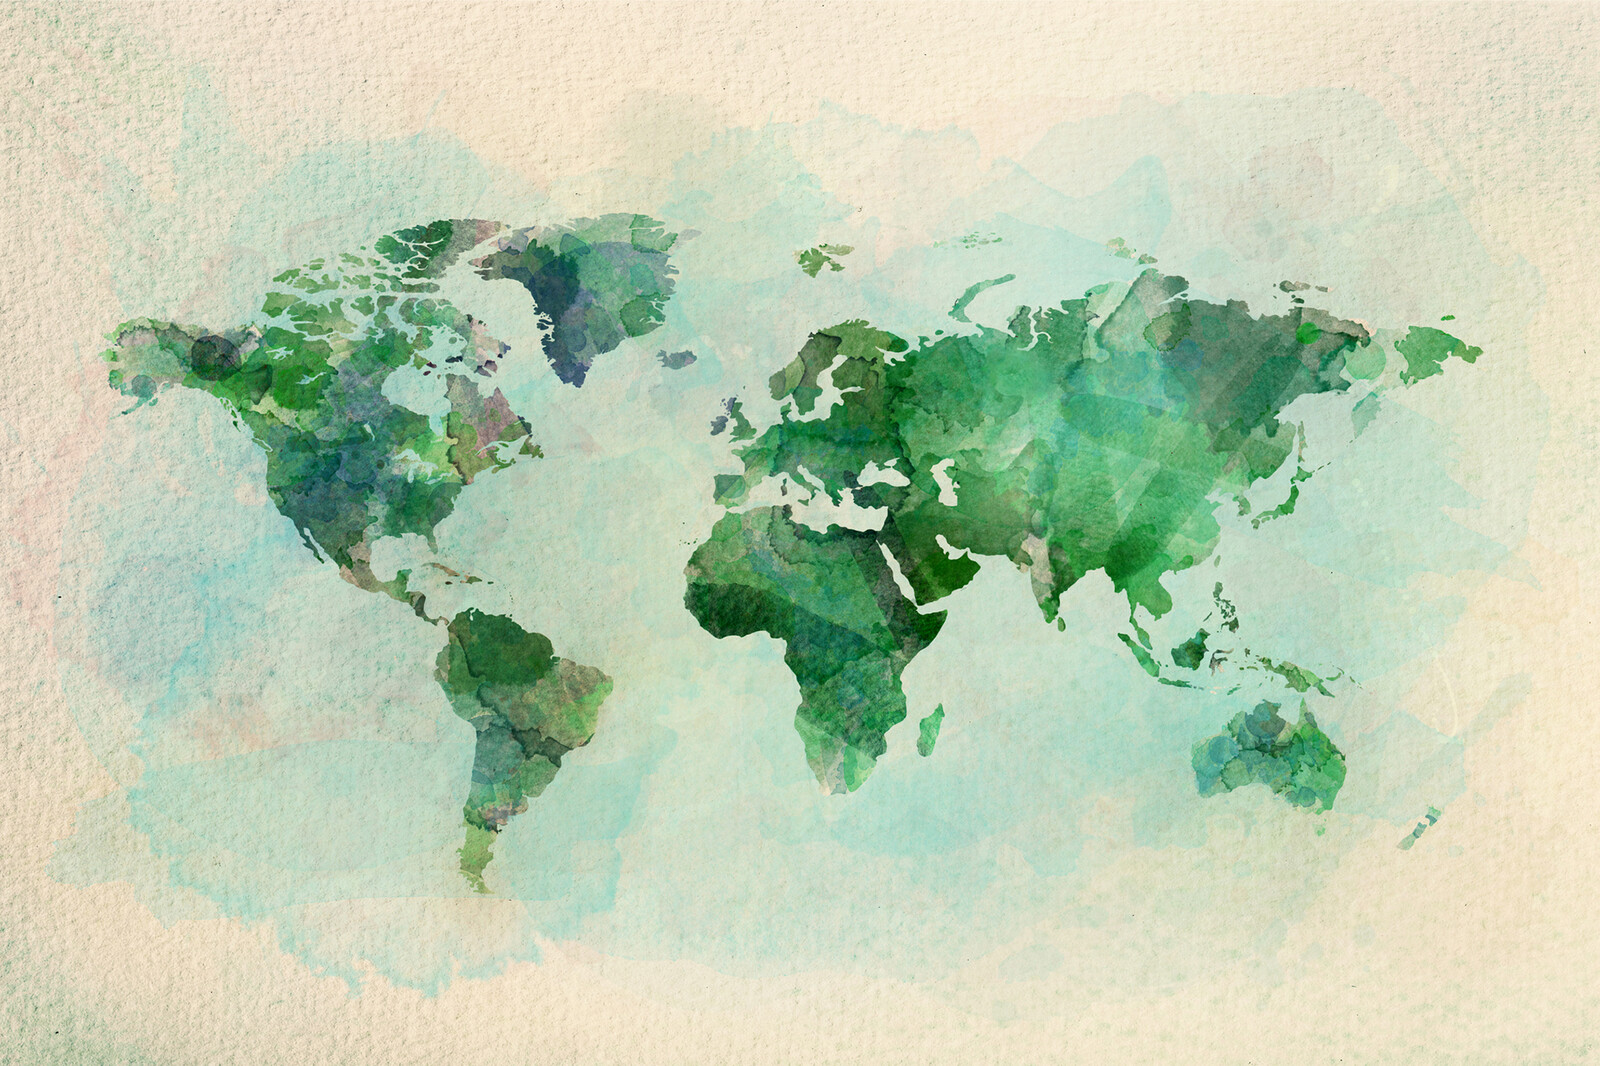 Watercolor illustration of world map